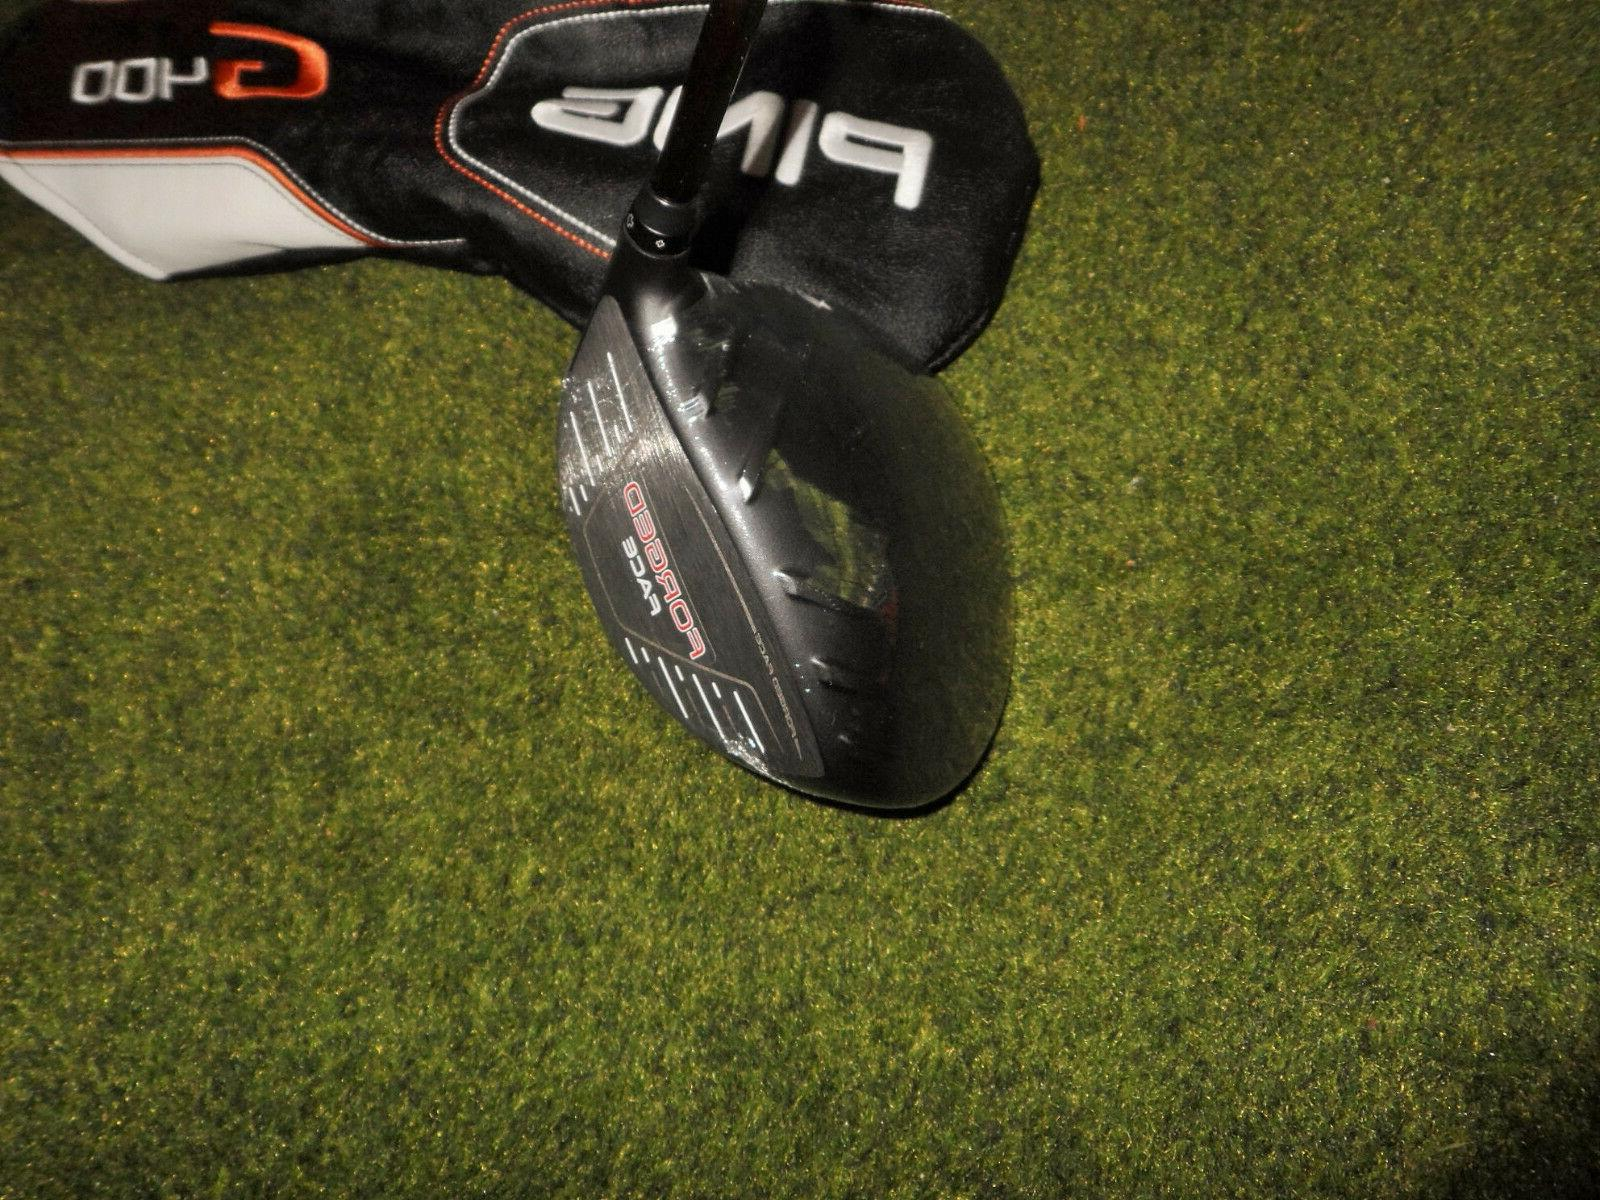 SWEET GOLF CLUB A  PING G400 MAX  10.5* DRIVER WITH A  ALTA